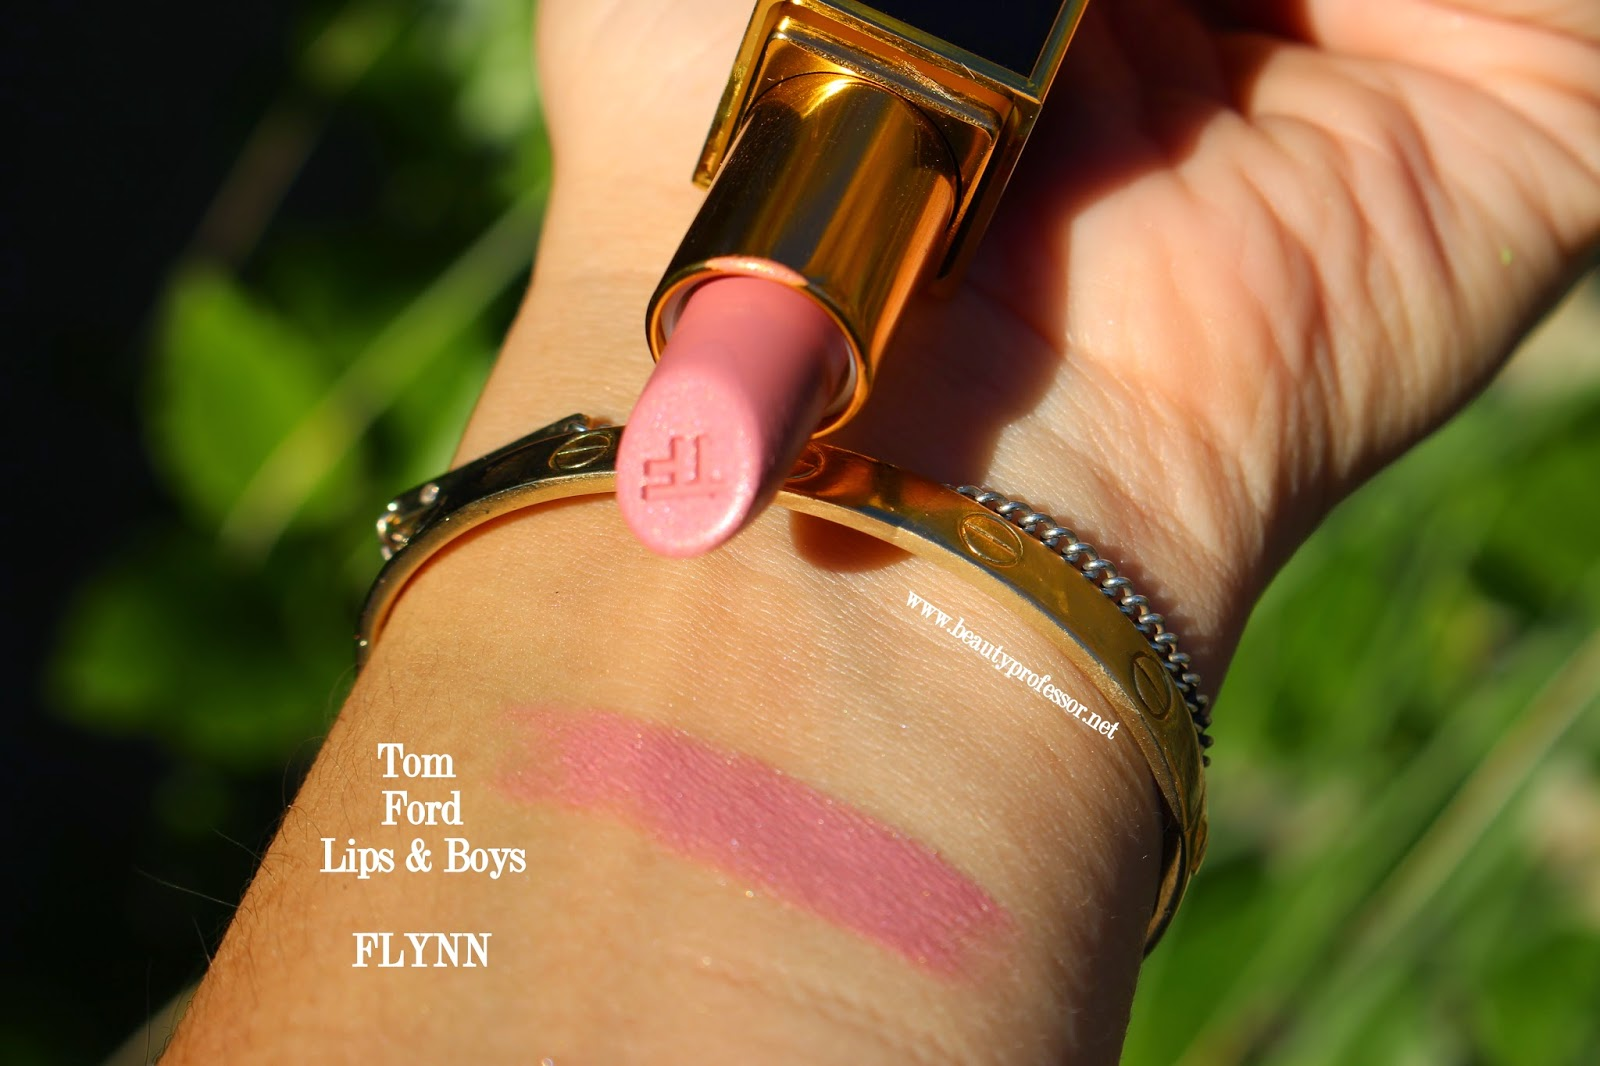 tom ford lips and boys flynn swatch